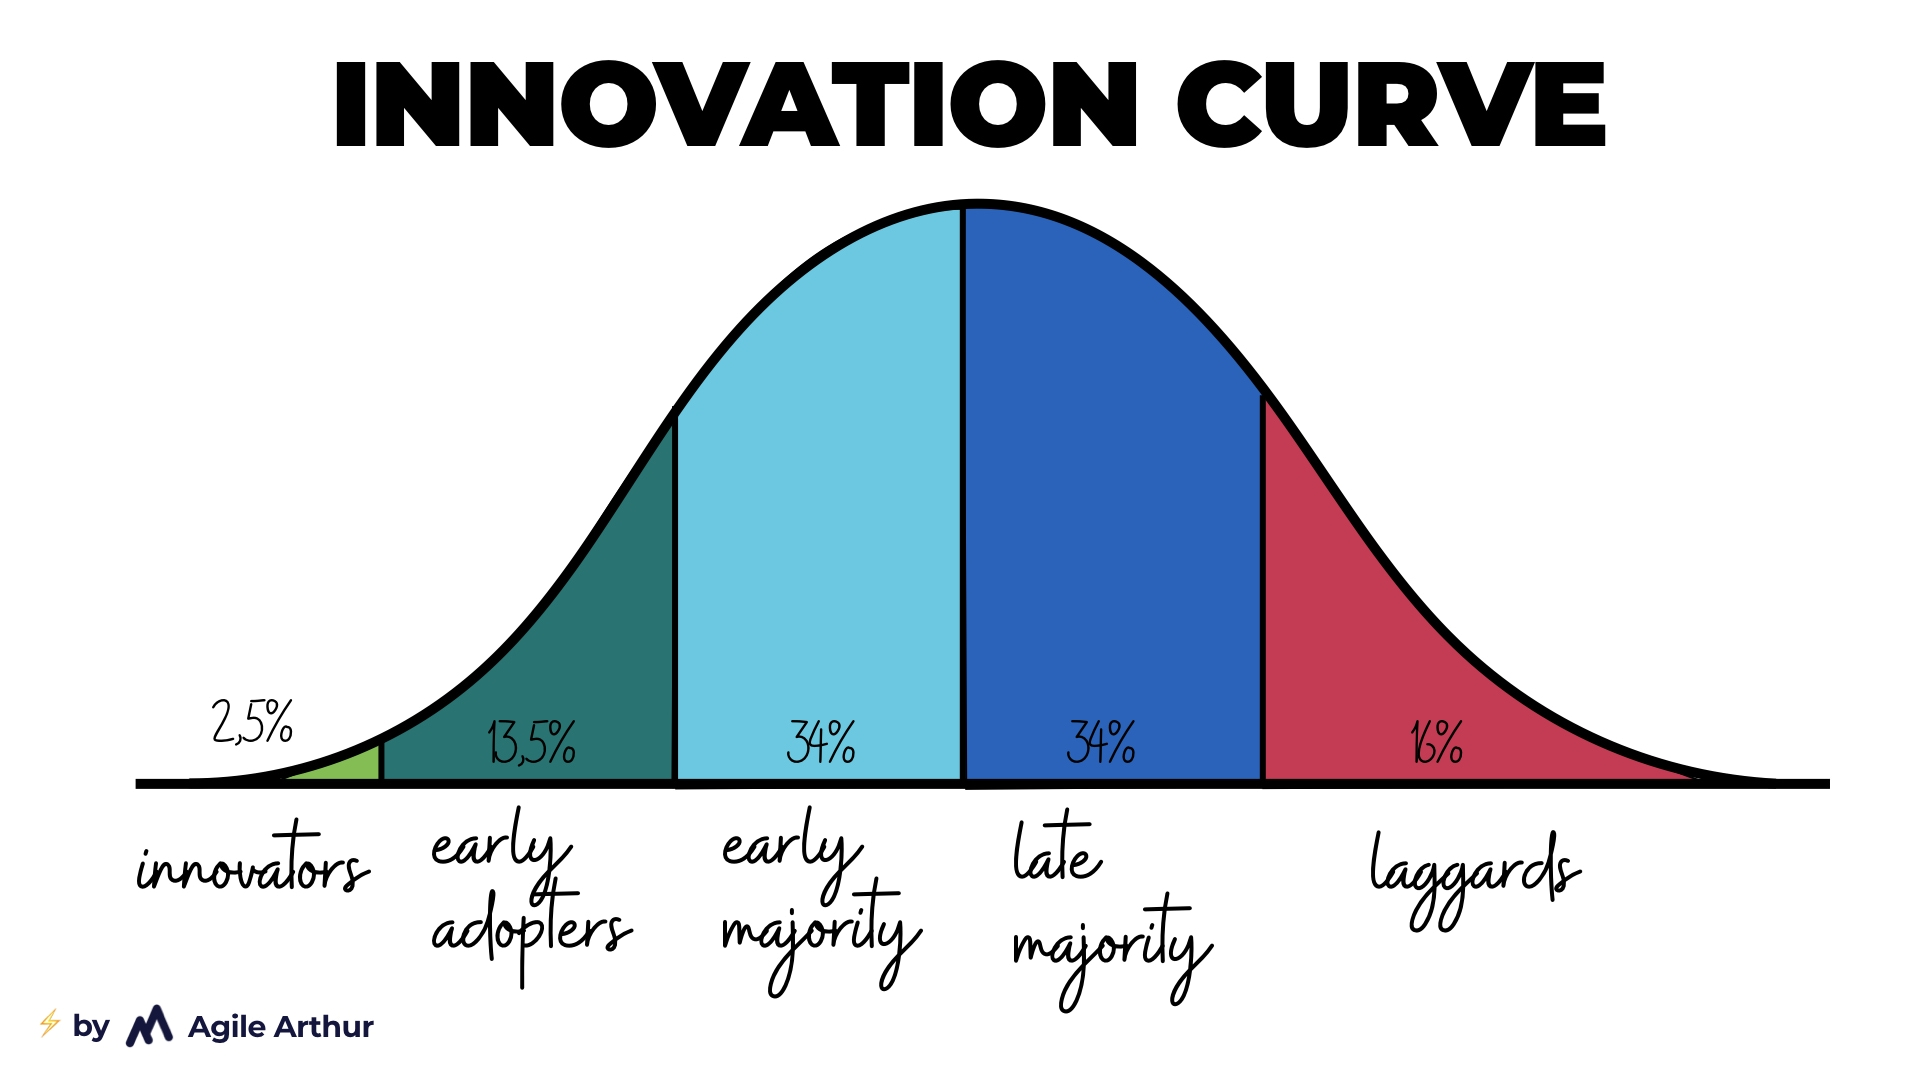 Innovation Curve: 2,5% innovators, 13,5% early adopters, 34% early majority, 34% late majority, 16% laggards